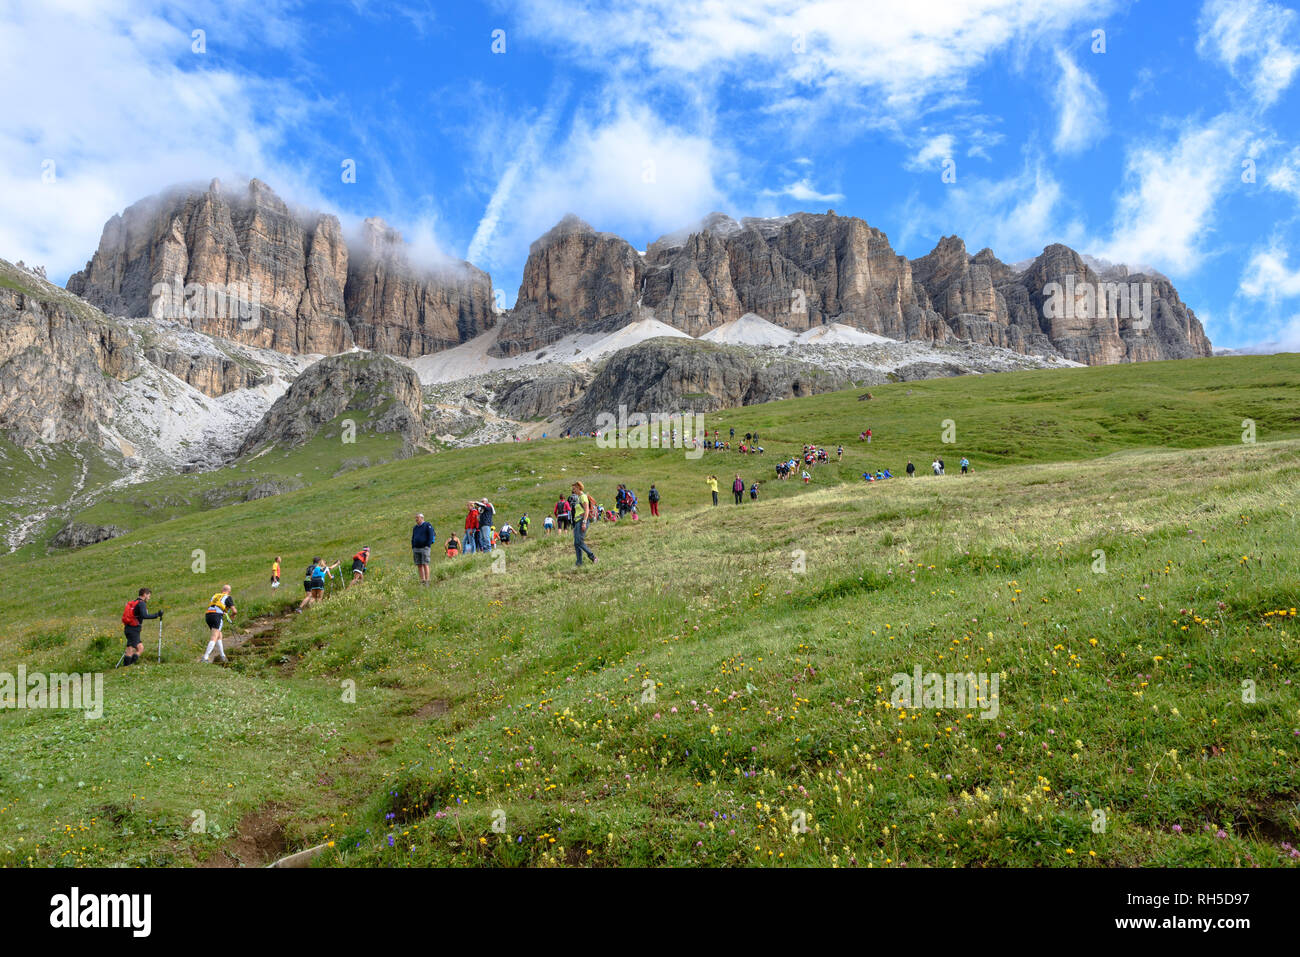 Participants in the Dolomites Skyrace running up the Sella Massif Stock Photo